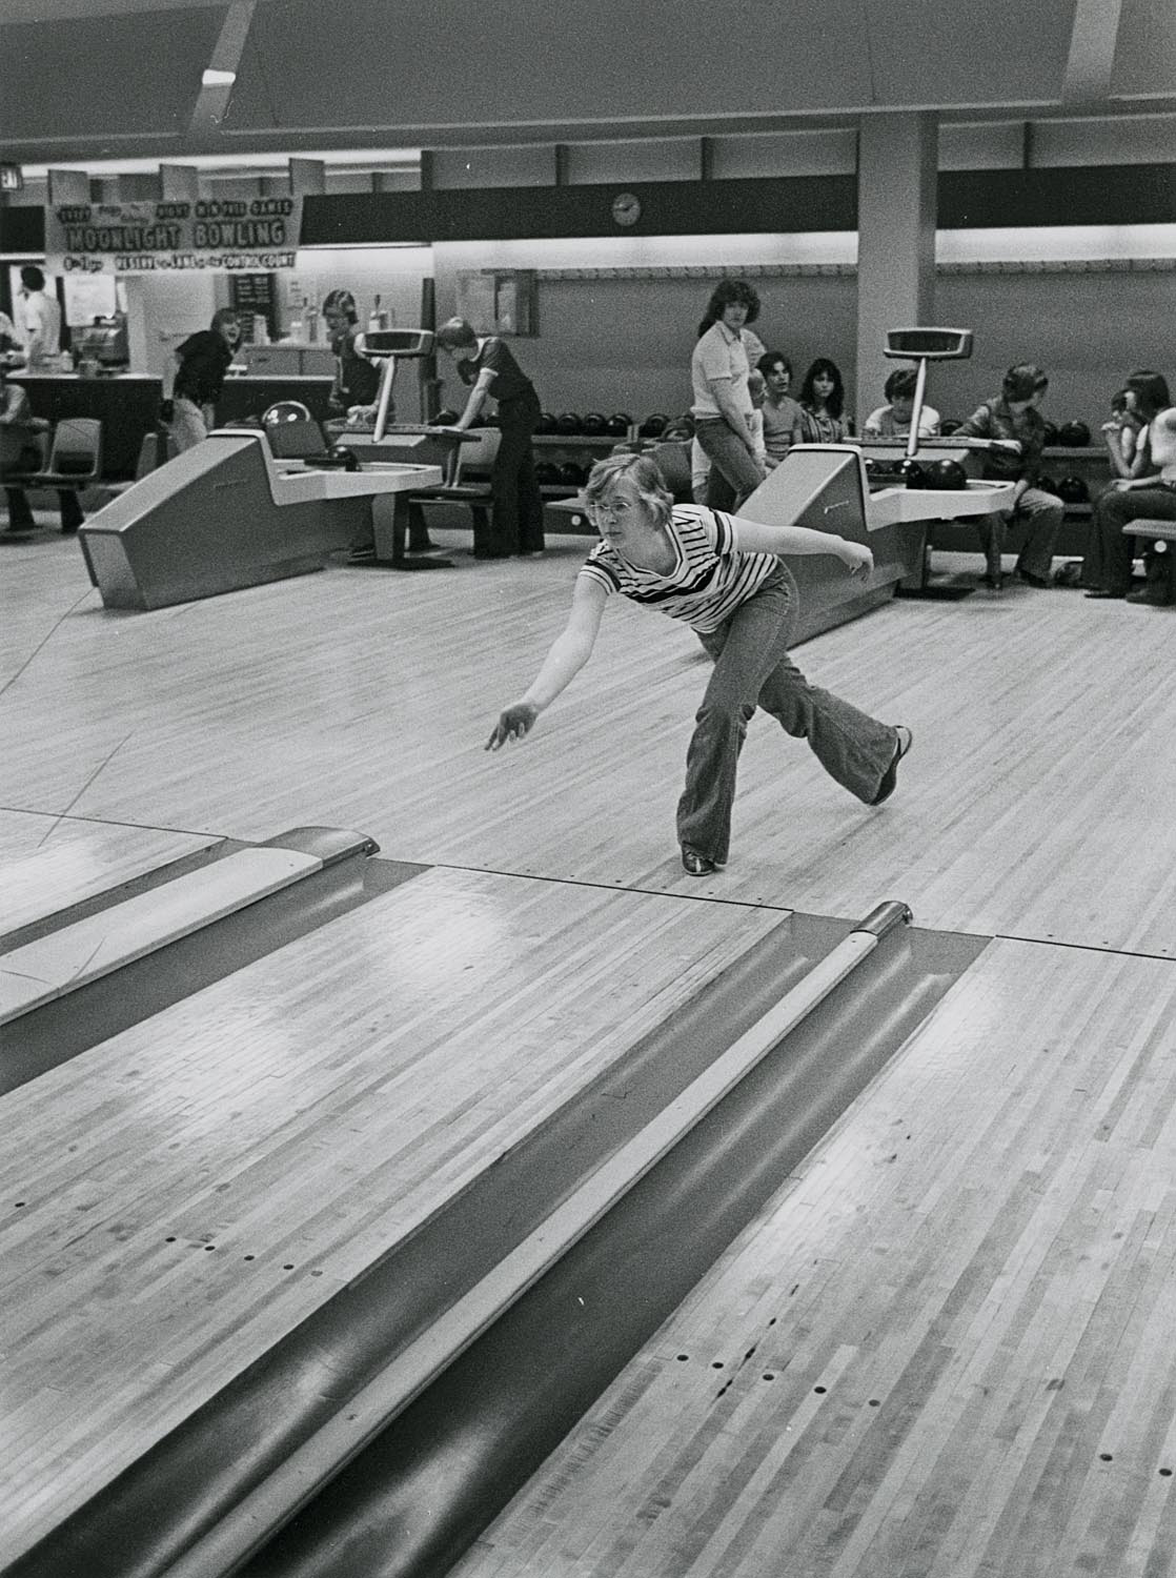 Bowling Alley - large image